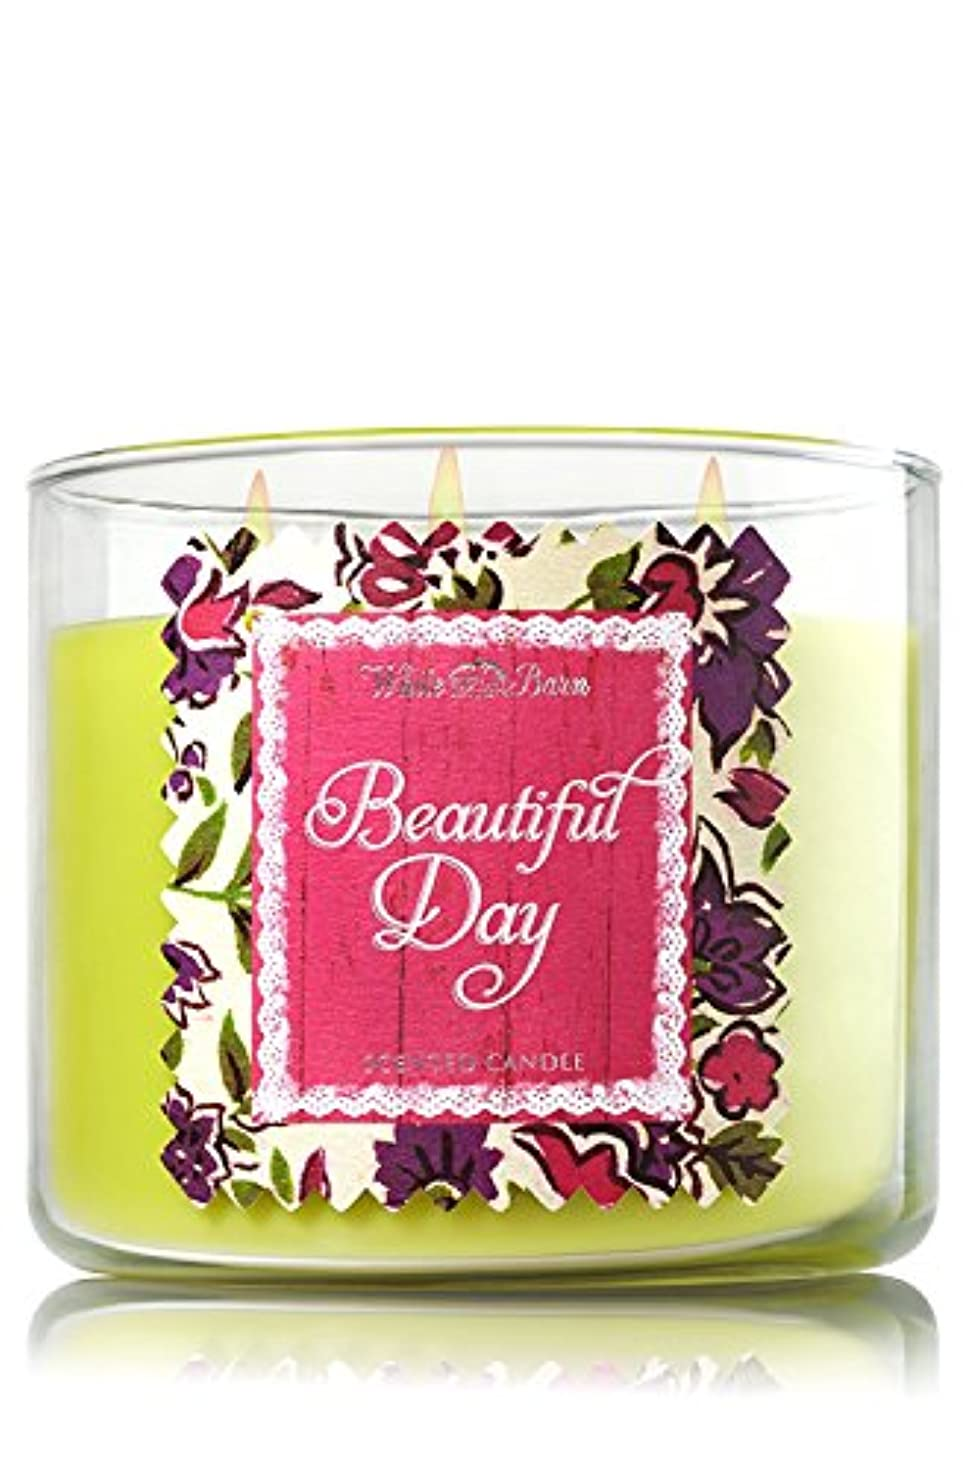 バンジョーと遊ぶあそこBath & Body Works Candle 3 Wick 14.5 Ounce Limited Edition 2015 Beautiful Day by White Barn